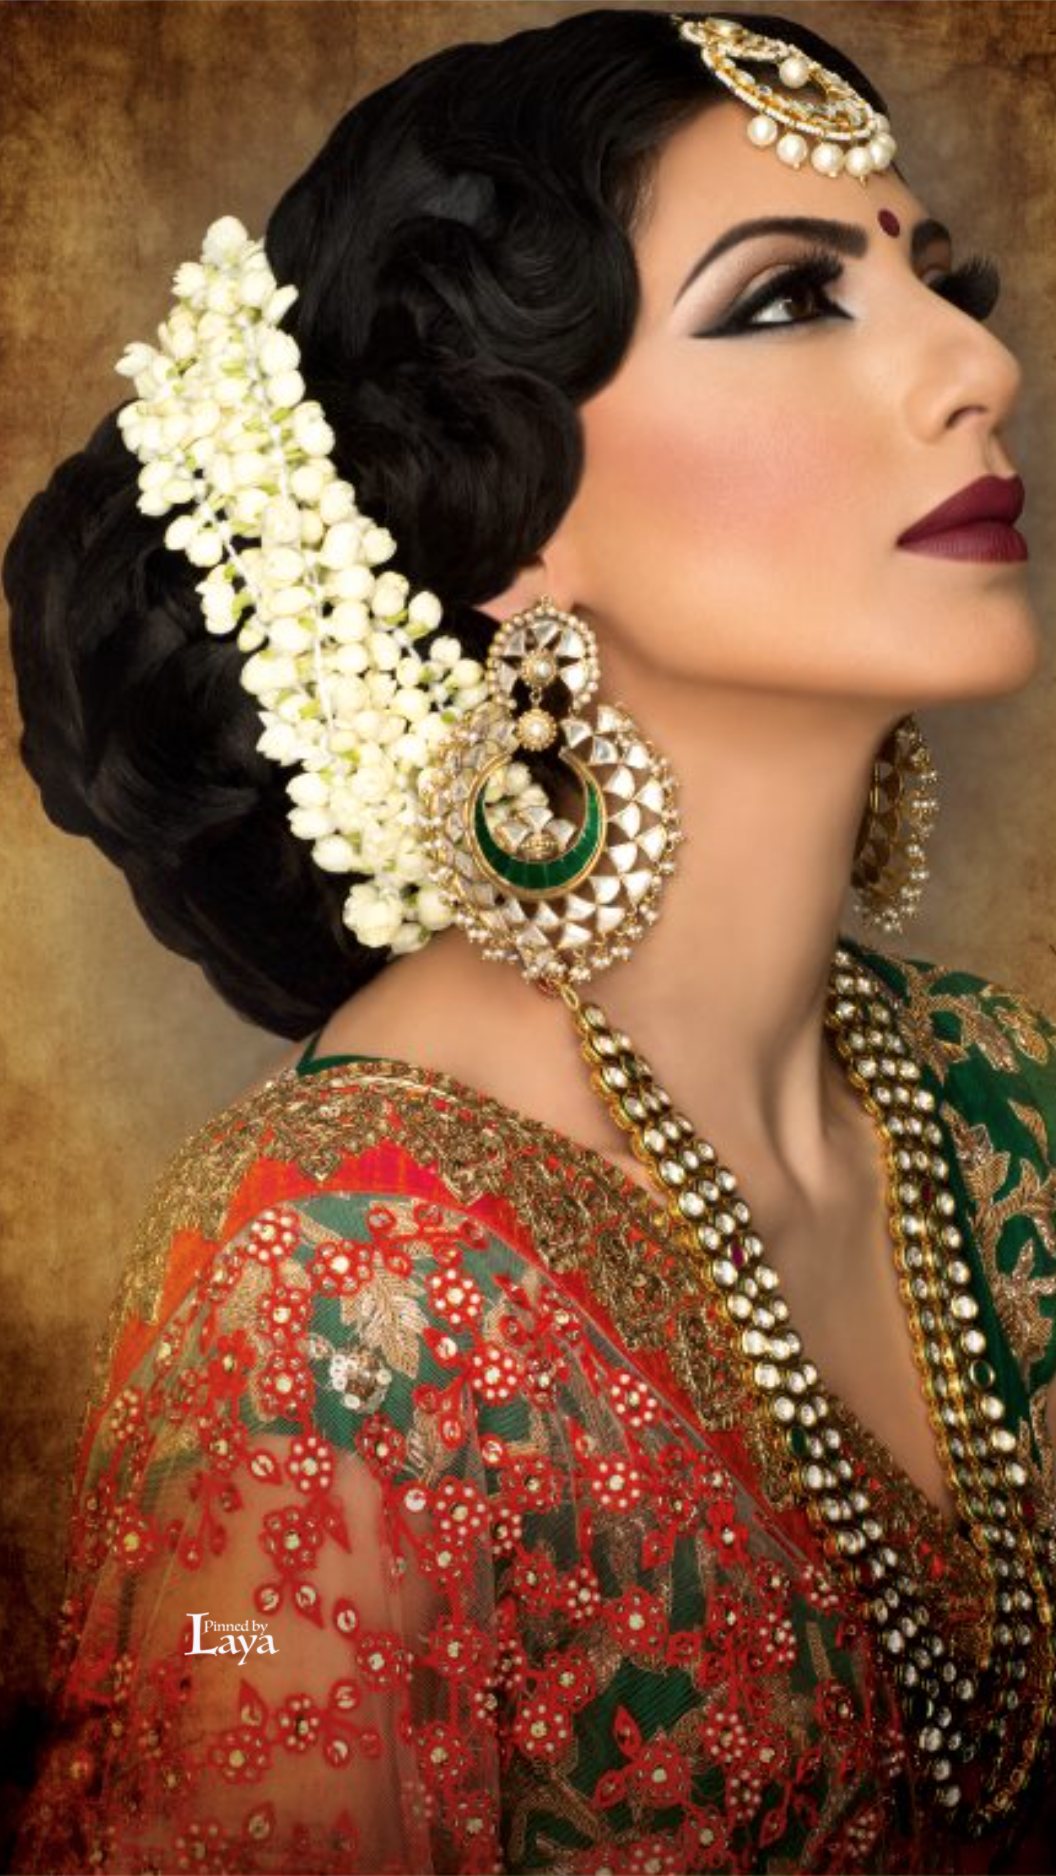 what a beautiful large low bun with real flower gajra! care